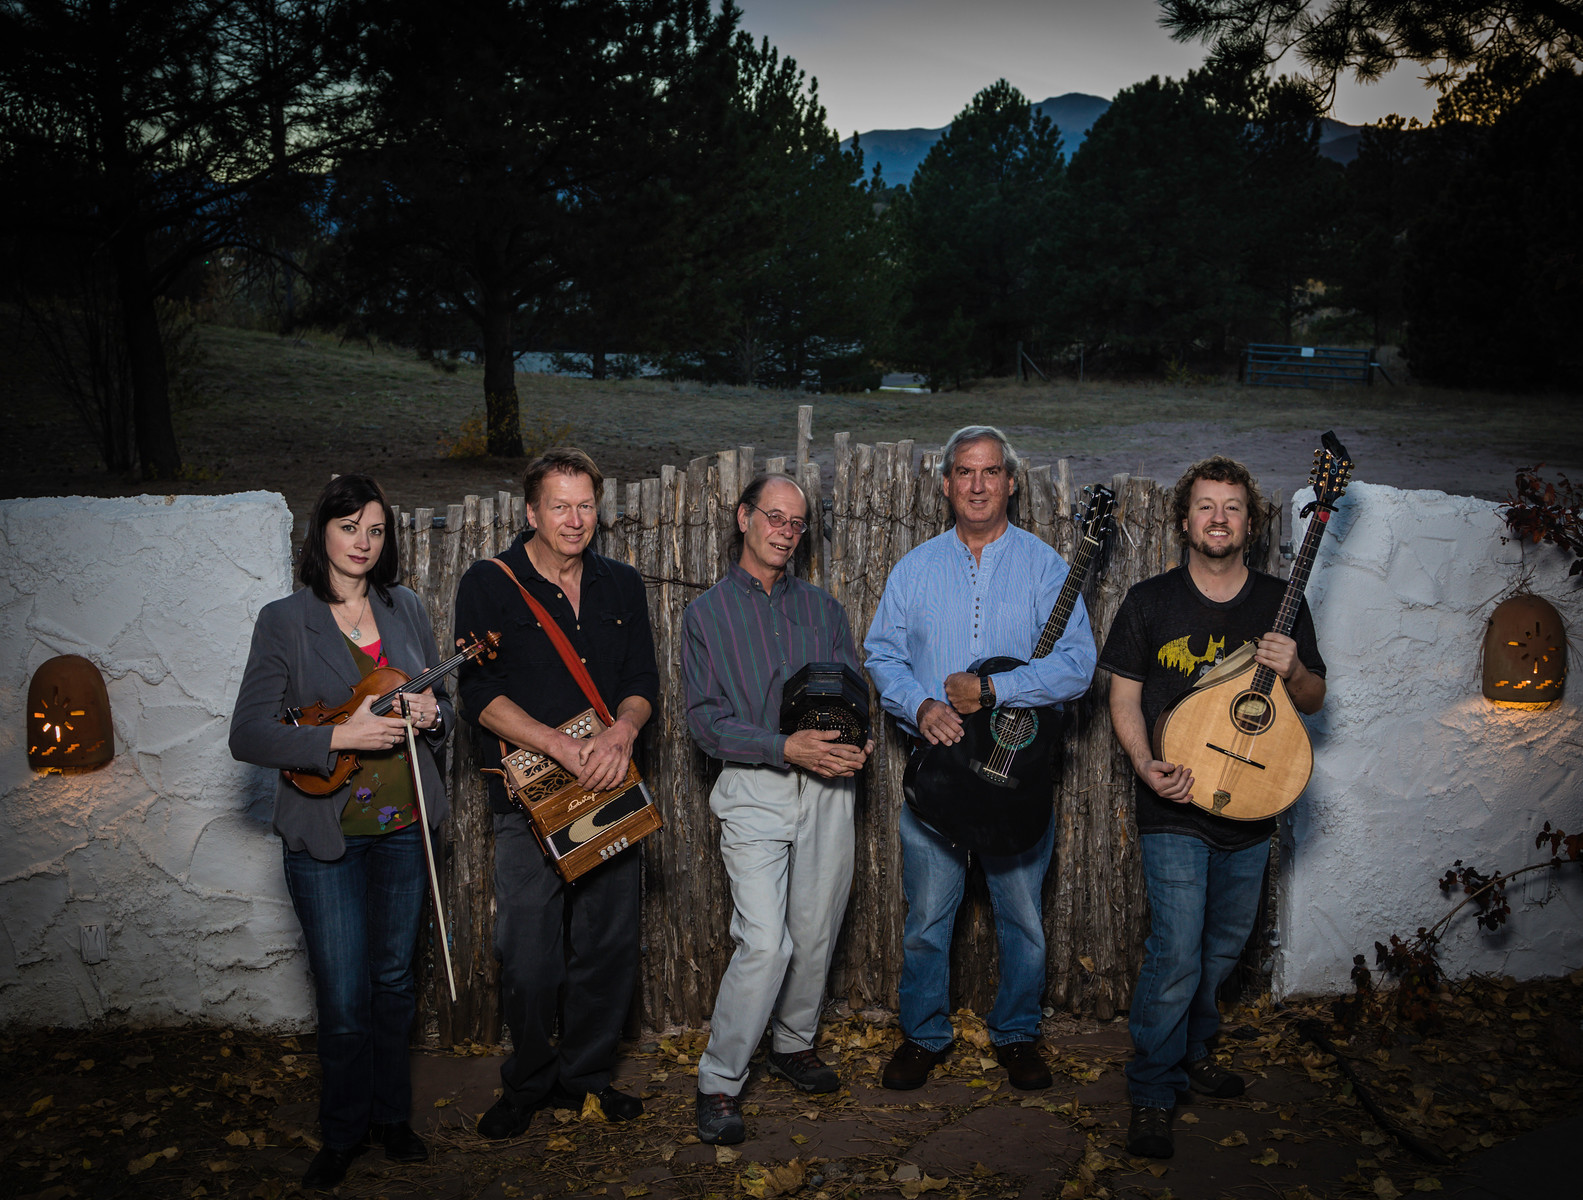 Profile – Mountain Road Ceili Band